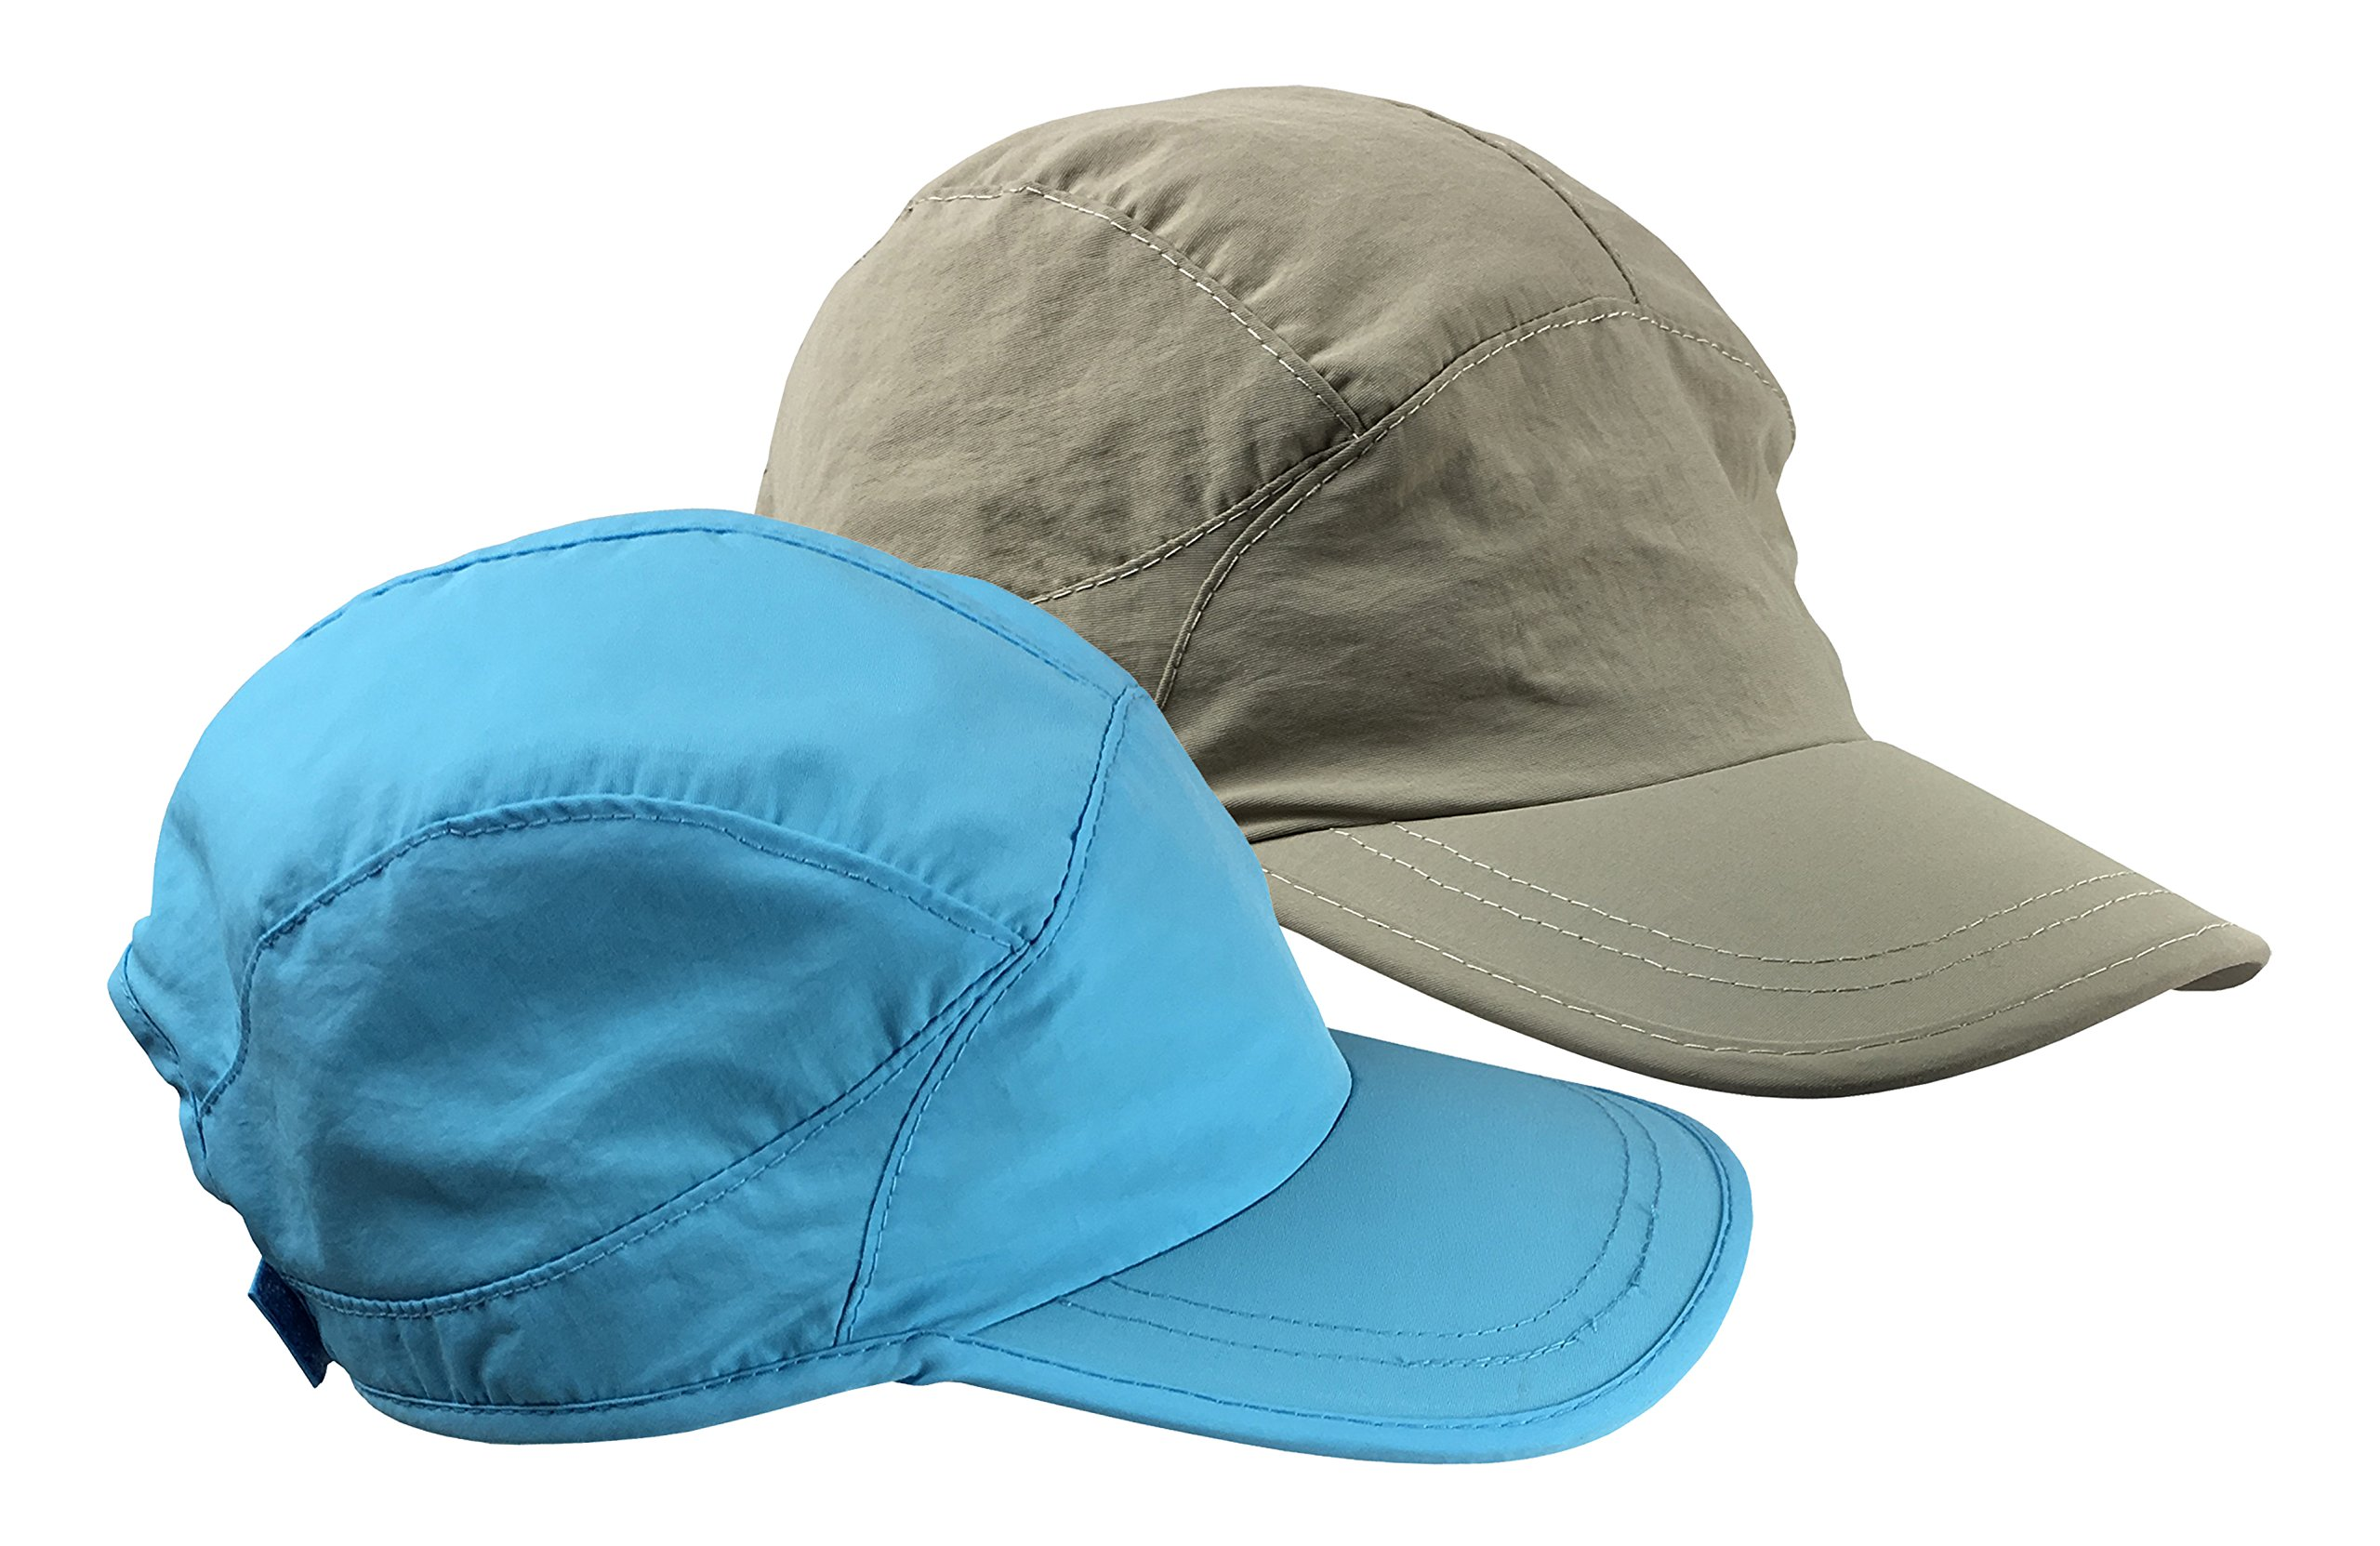 N'Ice Caps Kids SPF 50+ UV Protection Adjustable Mesh Lined Sun Cap - 2 Hat Pack